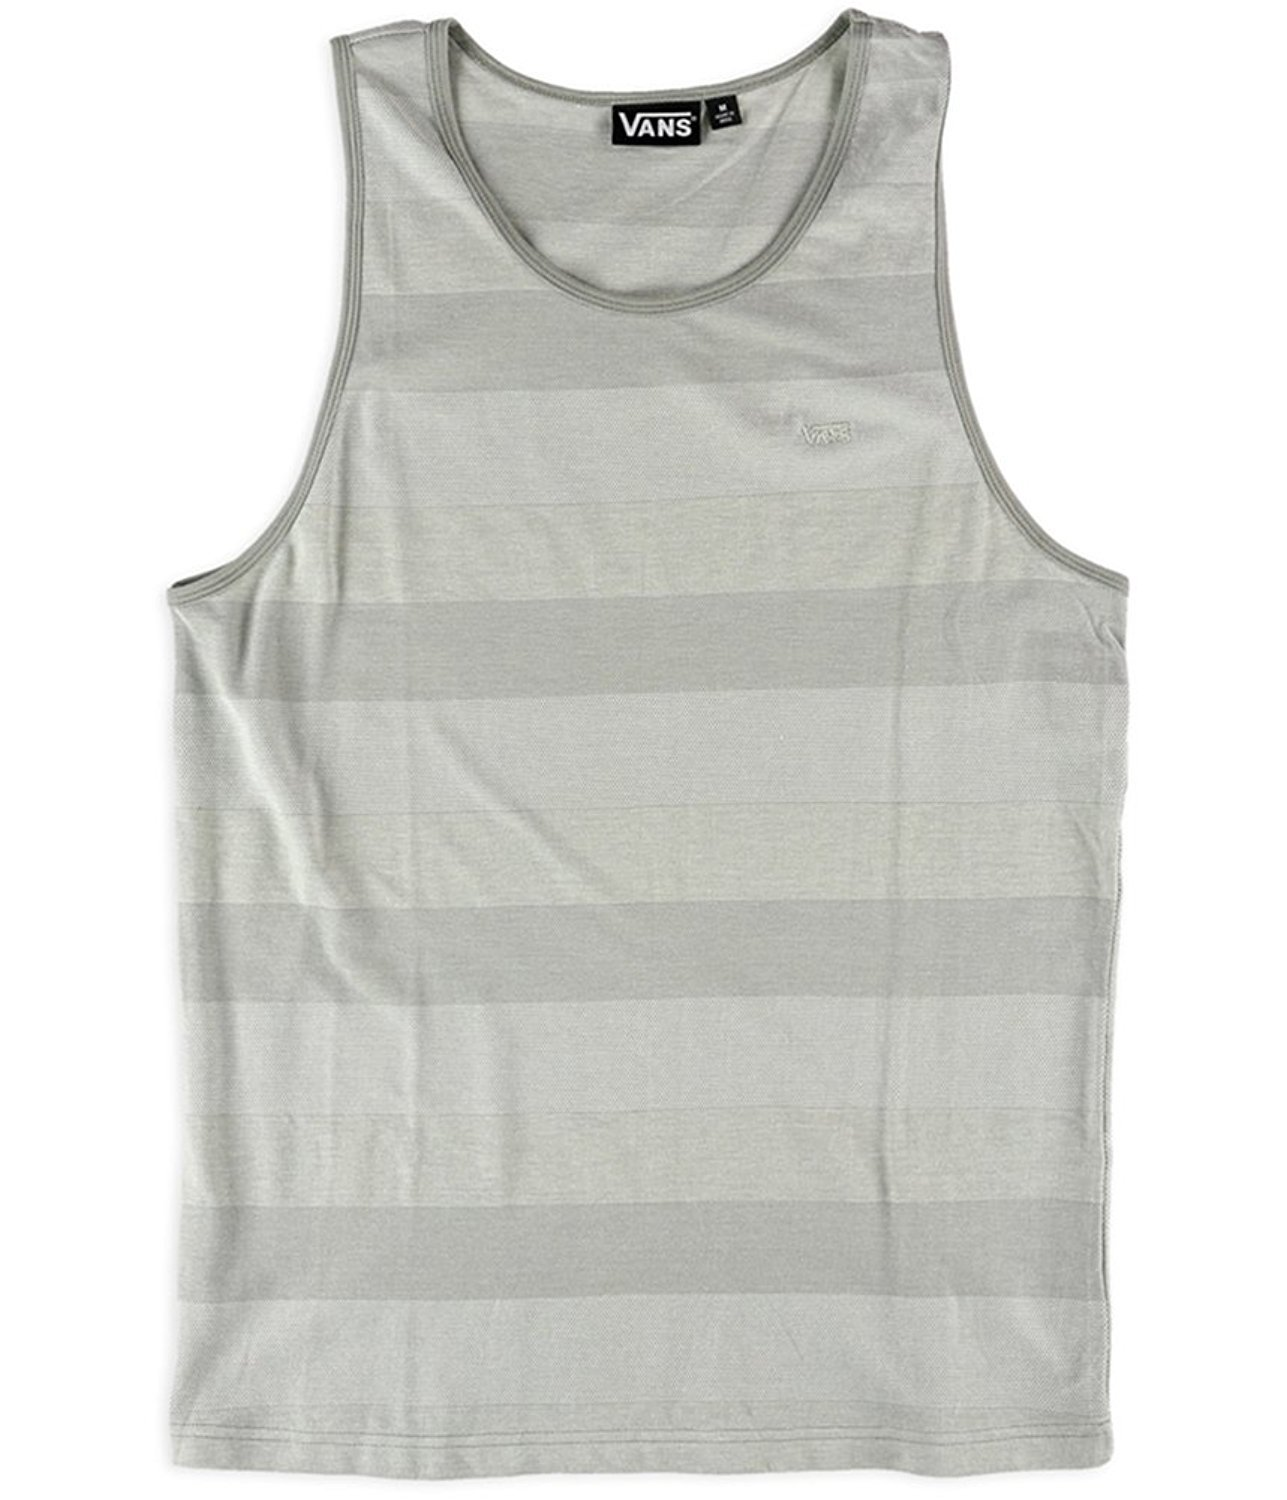 fba8189207 Vans Mens Striker Tank Top Stripe Icegrey Small at Amazon Men s Clothing  store